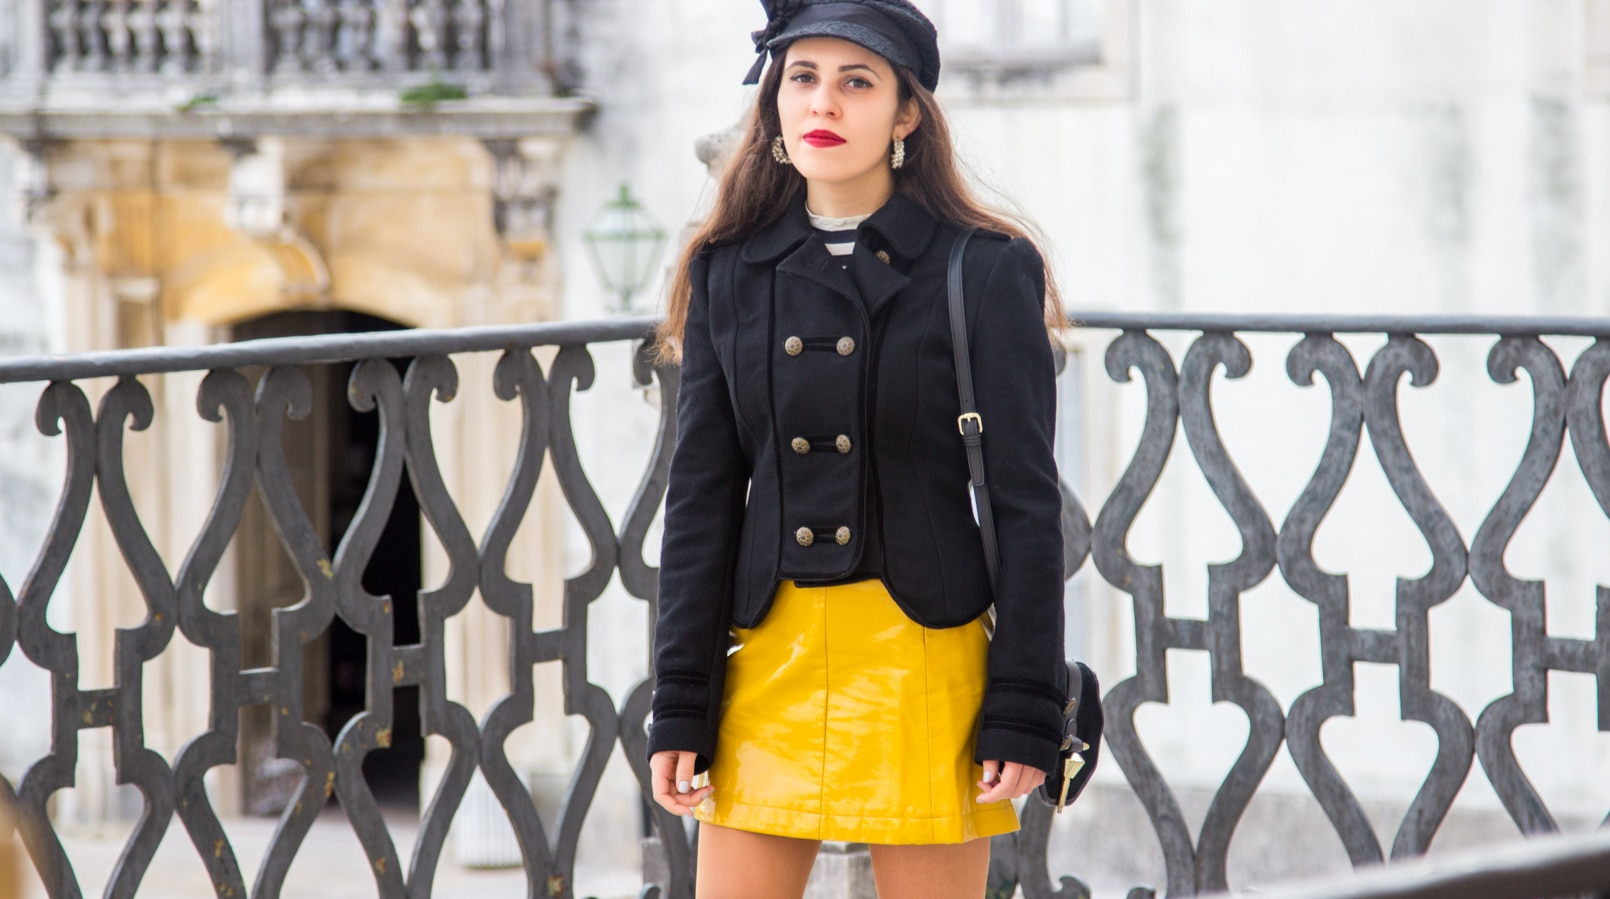 Le Fashionaire Pop of yellow fashion inspiration yellow vinyl trend sfera mini skirt black military wool jacket zara black bow lace claires hat white pearls pedra dura hoops 1043F EN